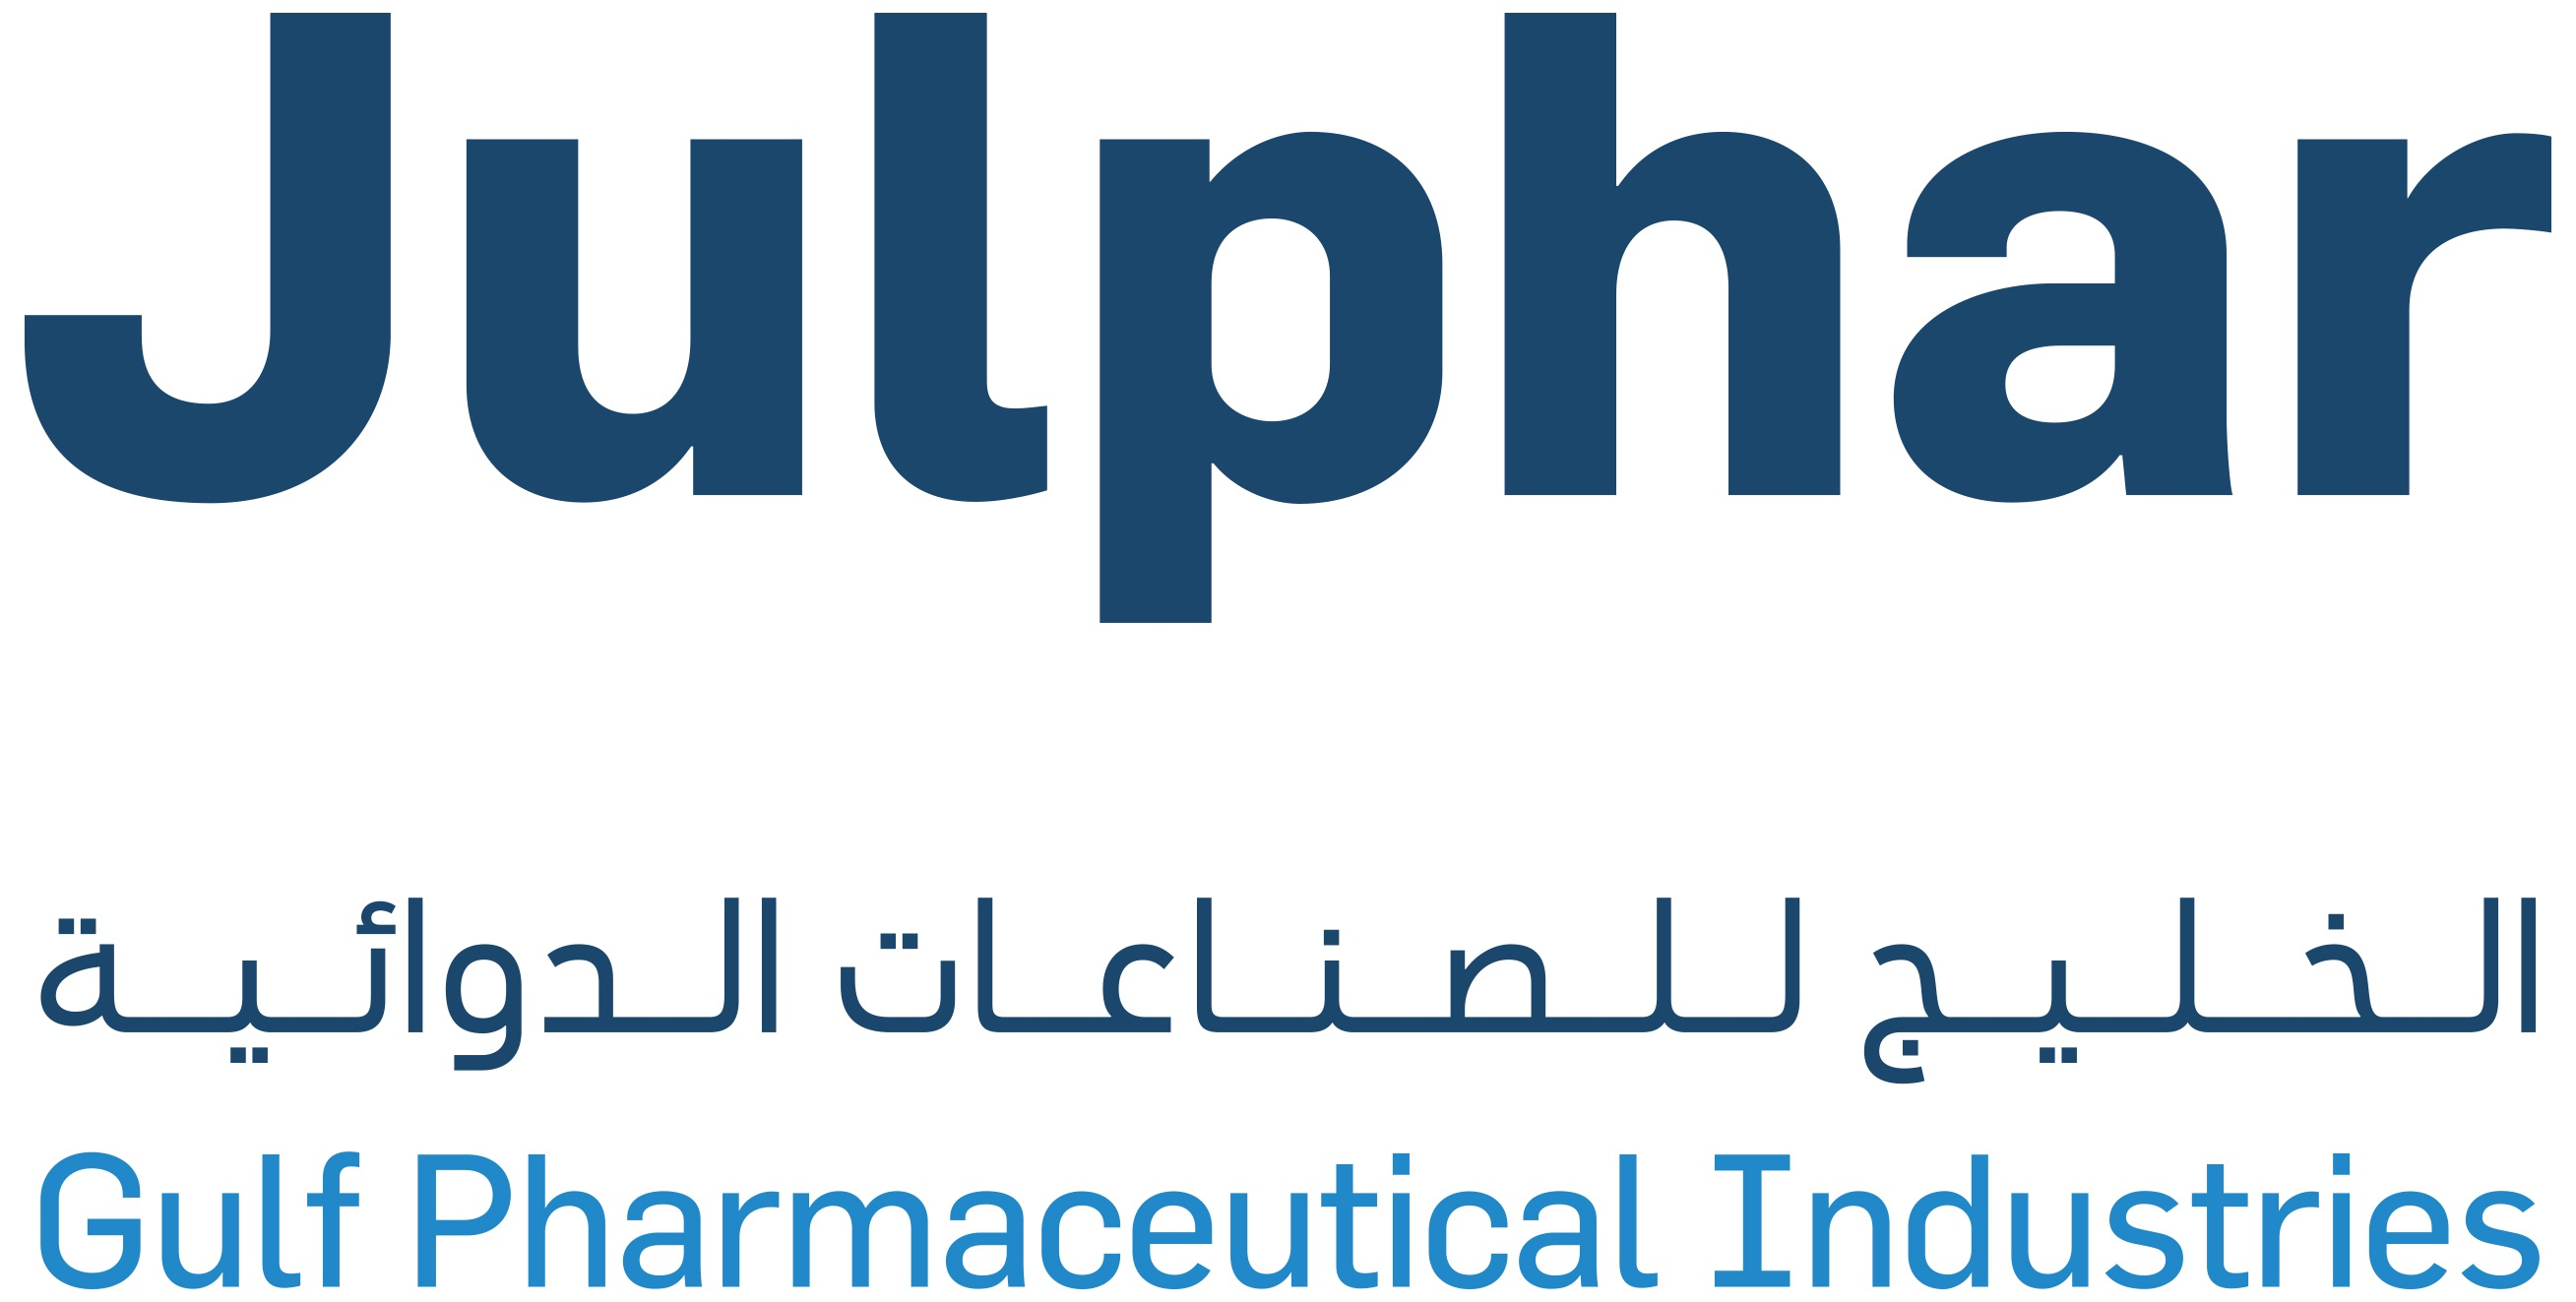 Gulf Pharmaceutical Industries - Julphar